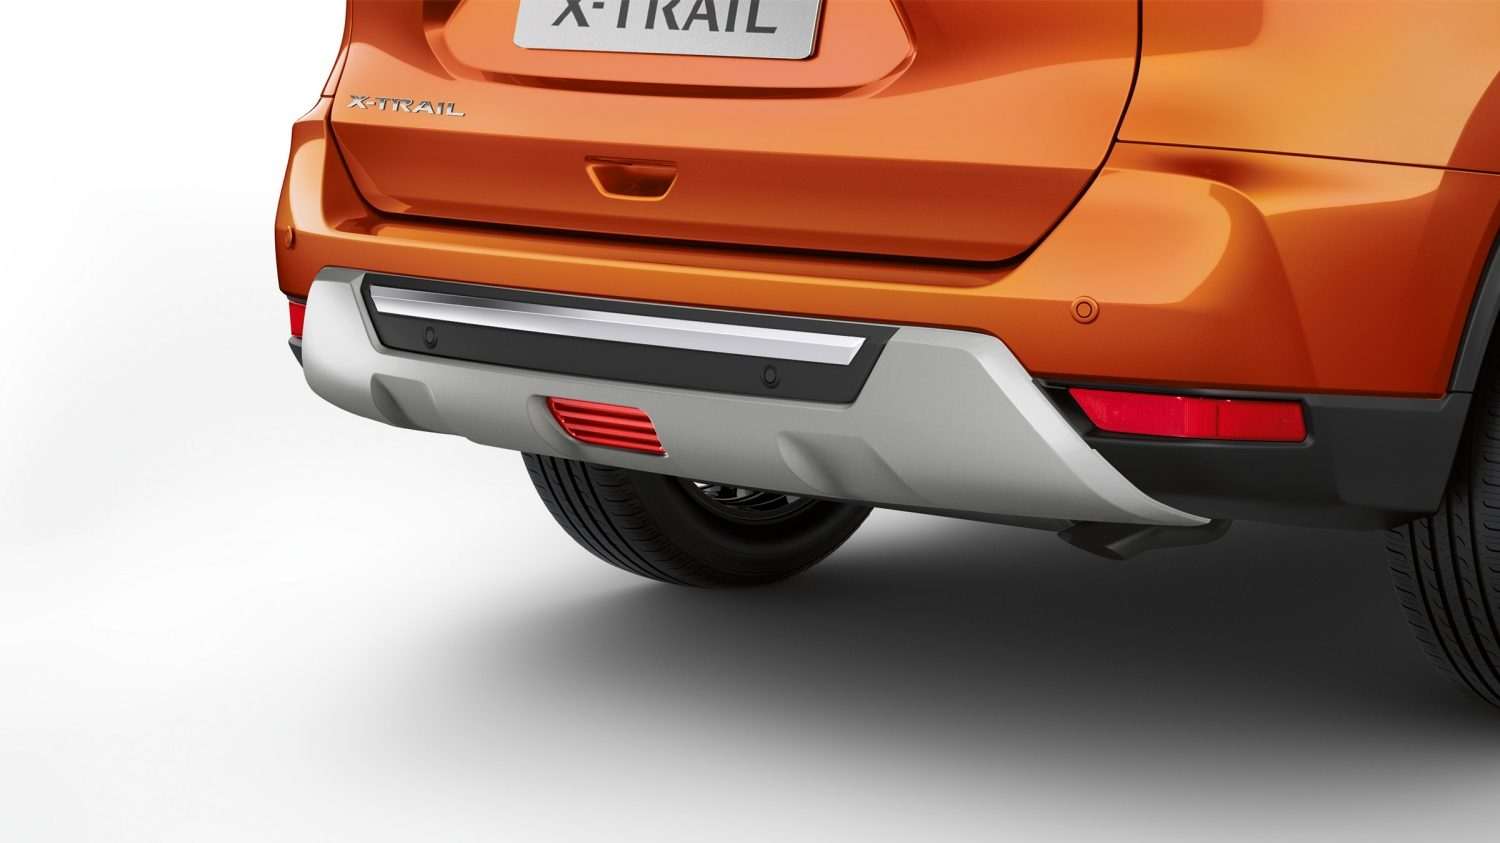 Placa embellecedora trasera del X-Trail